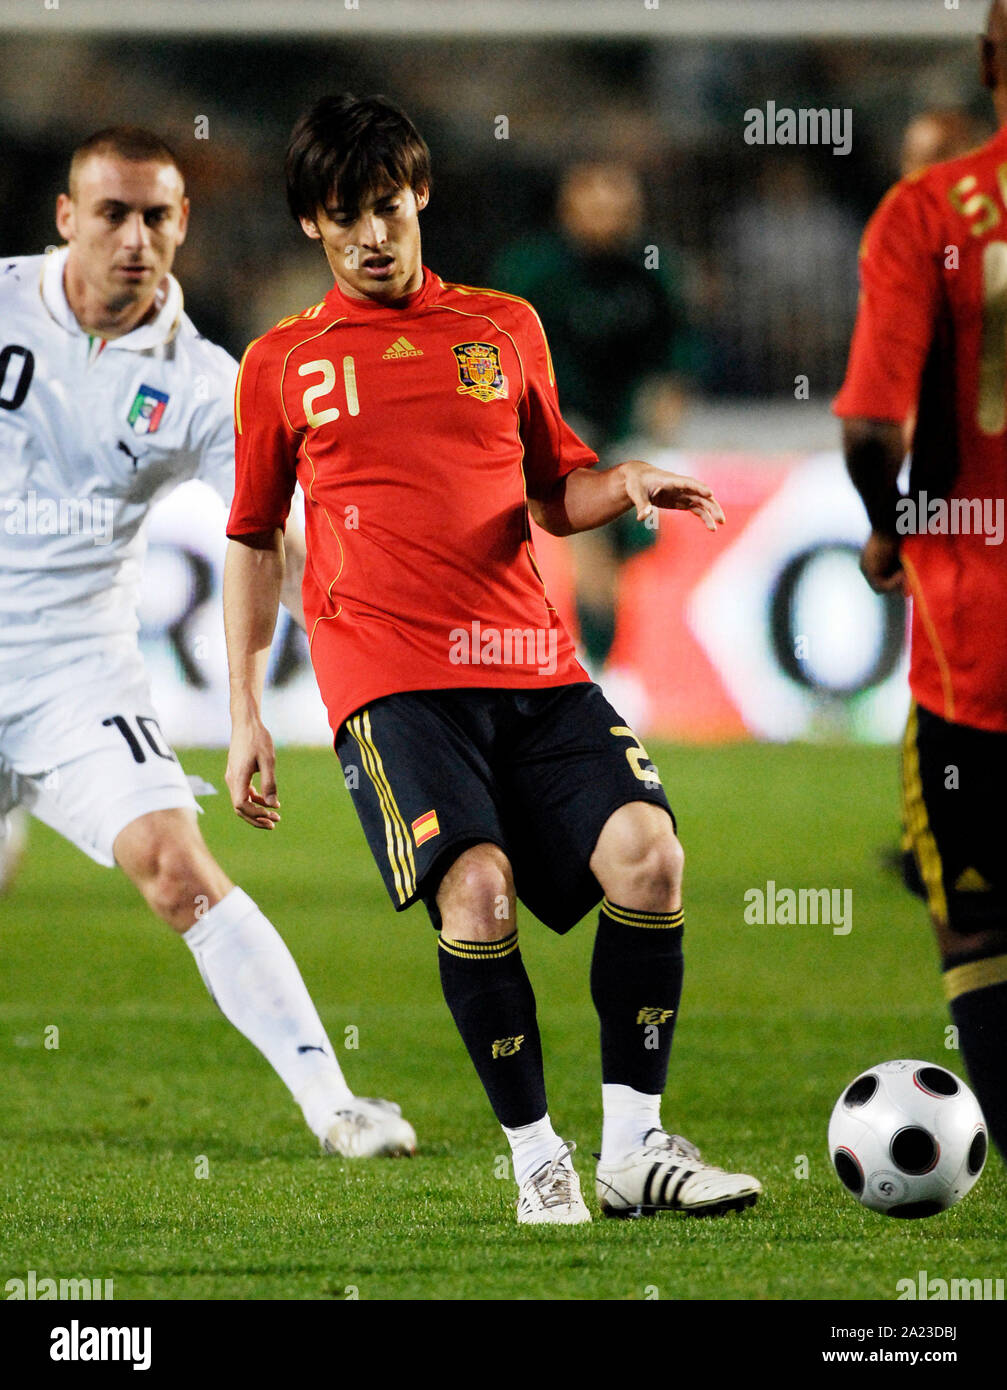 Usa vs spain 2008 2nd half betting best soccer betting predictions sites